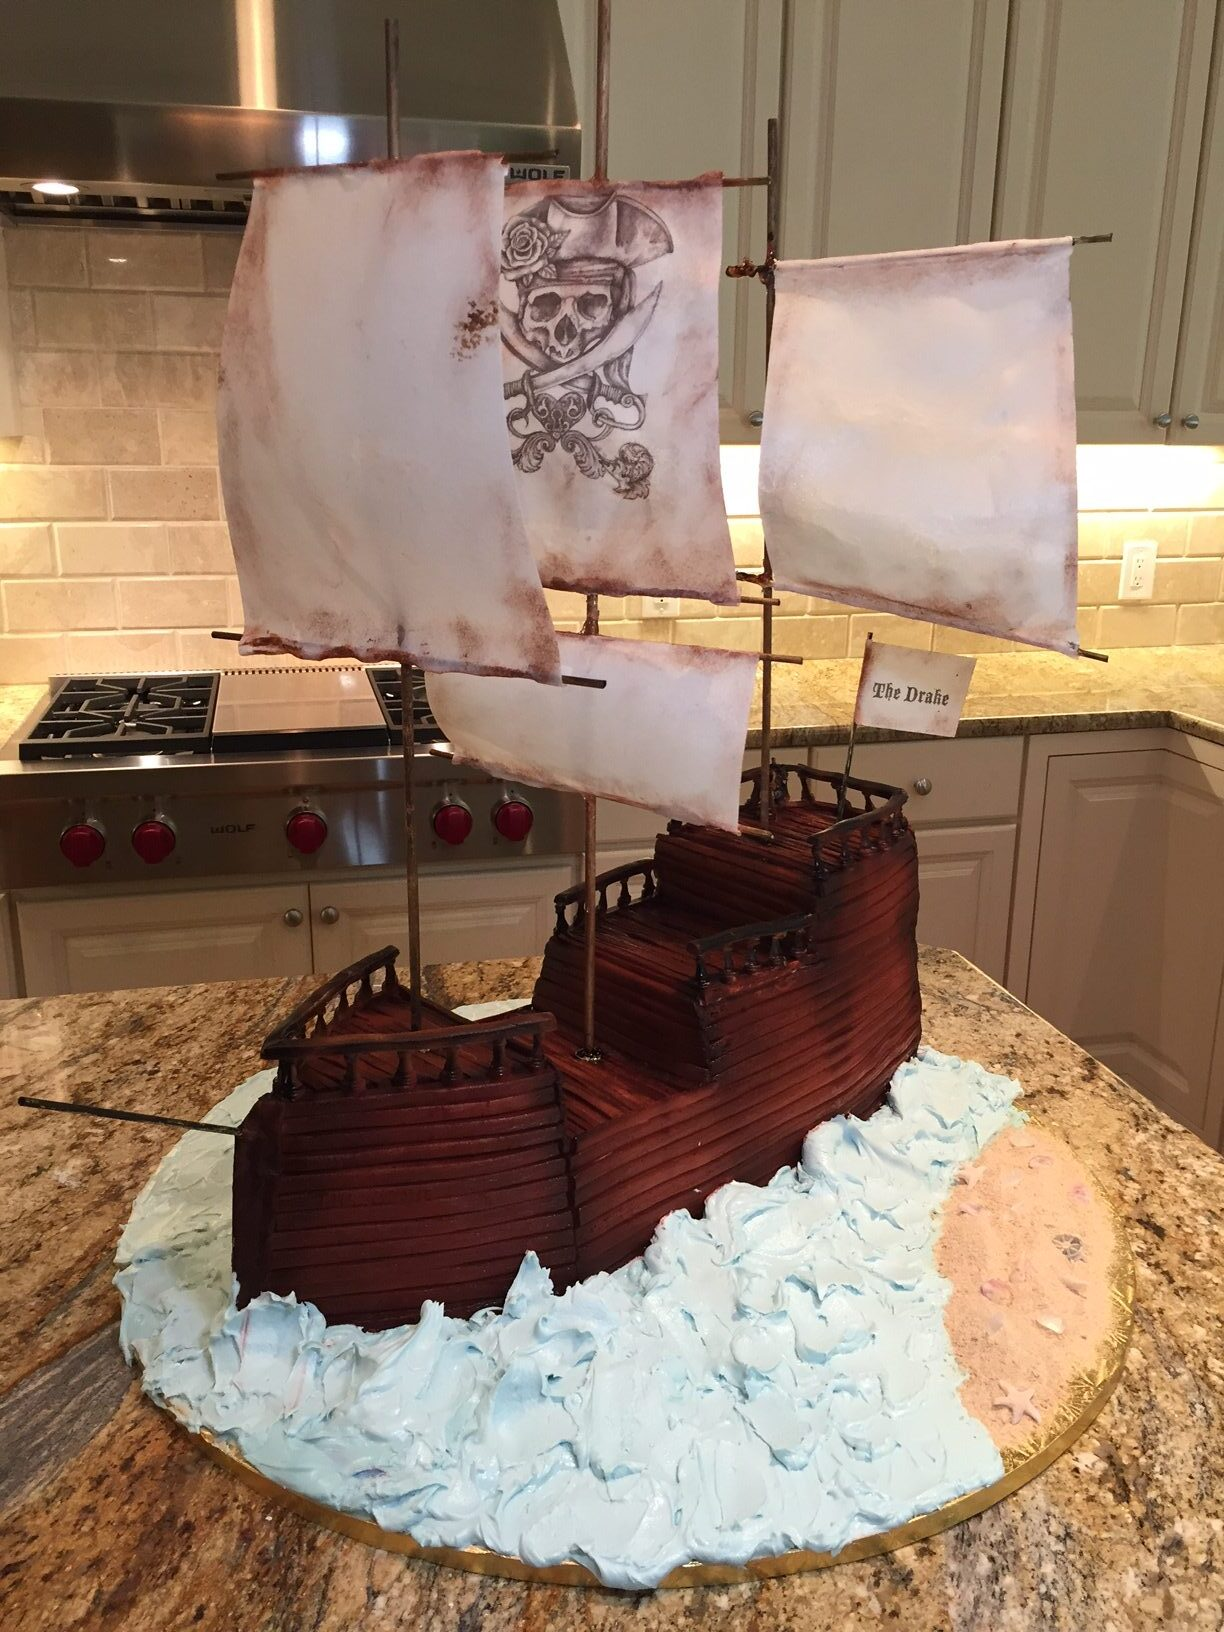 Pirate ship cake with edible wood planks and edible sails